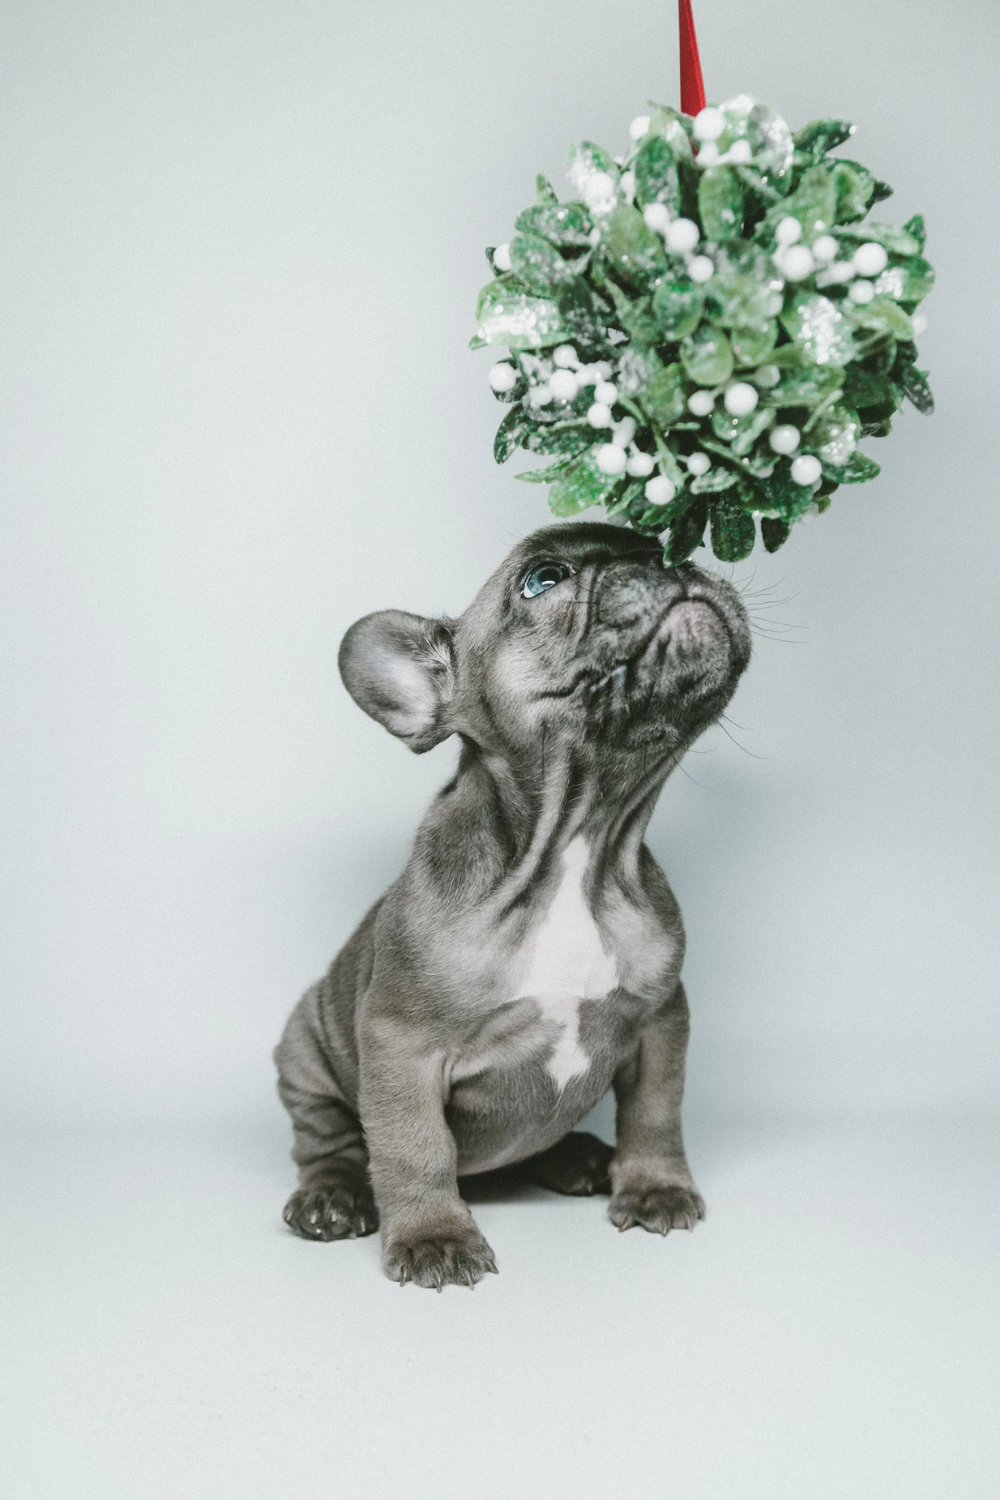 shortcoated gray puppy smelling hanging flower photo